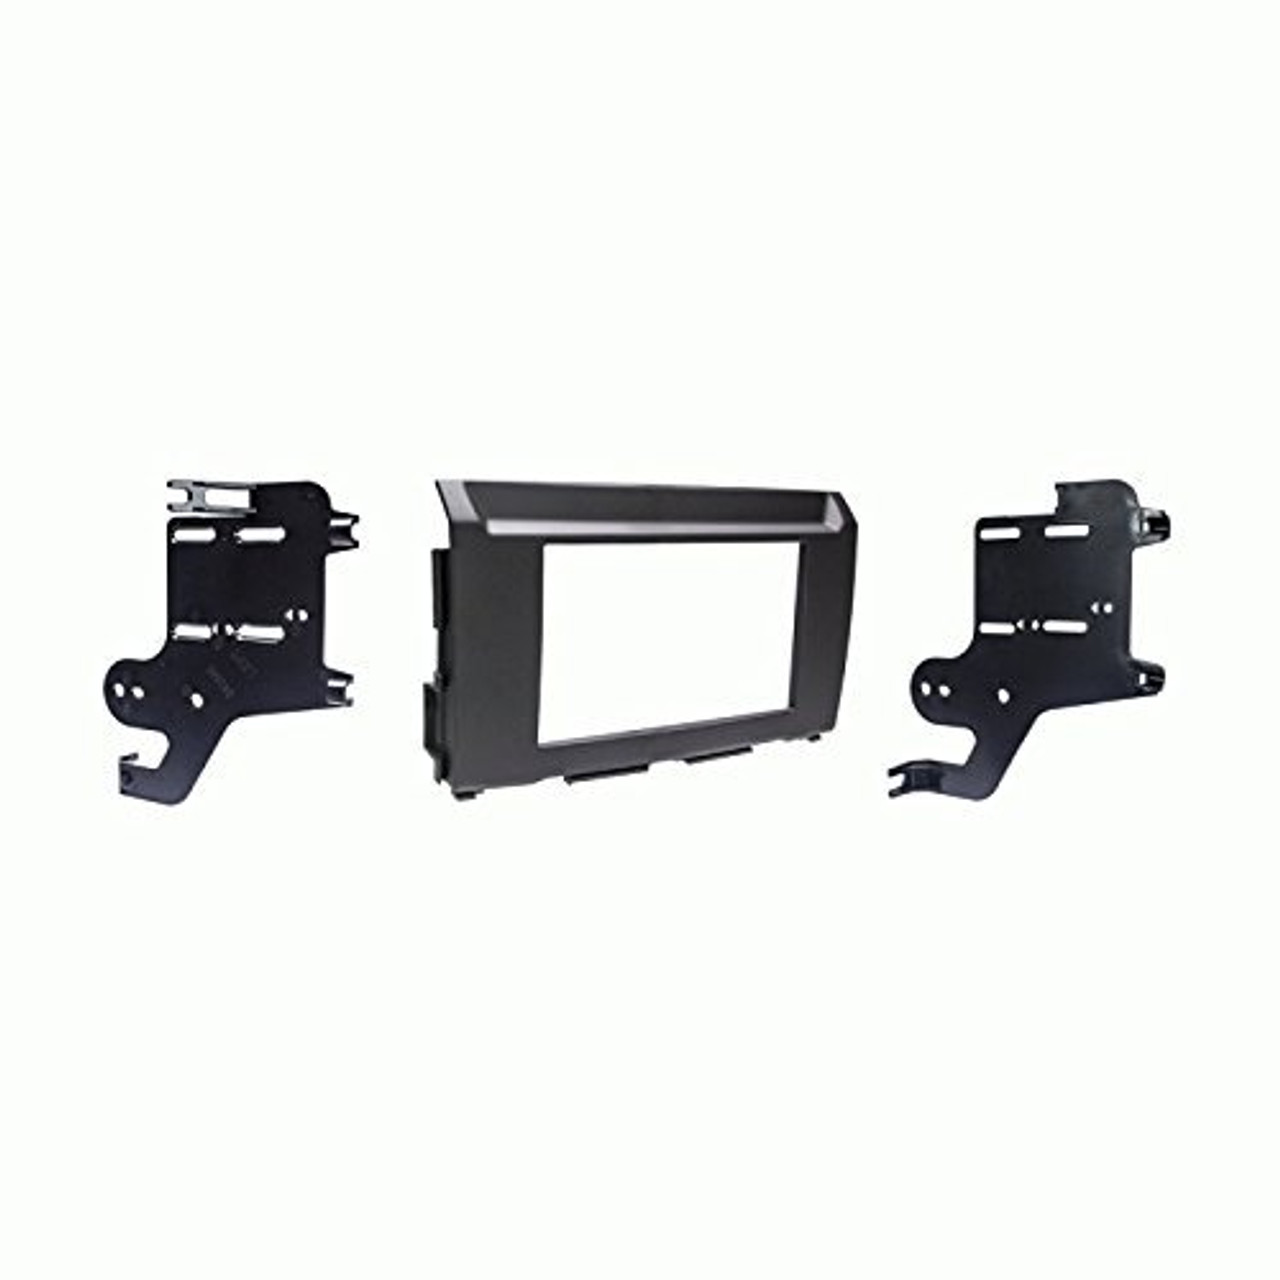 Metra95-7619 Car Stereo Installation Dash Kit for 2013-UP Nissan Frontier//Titan//Xterra, Black